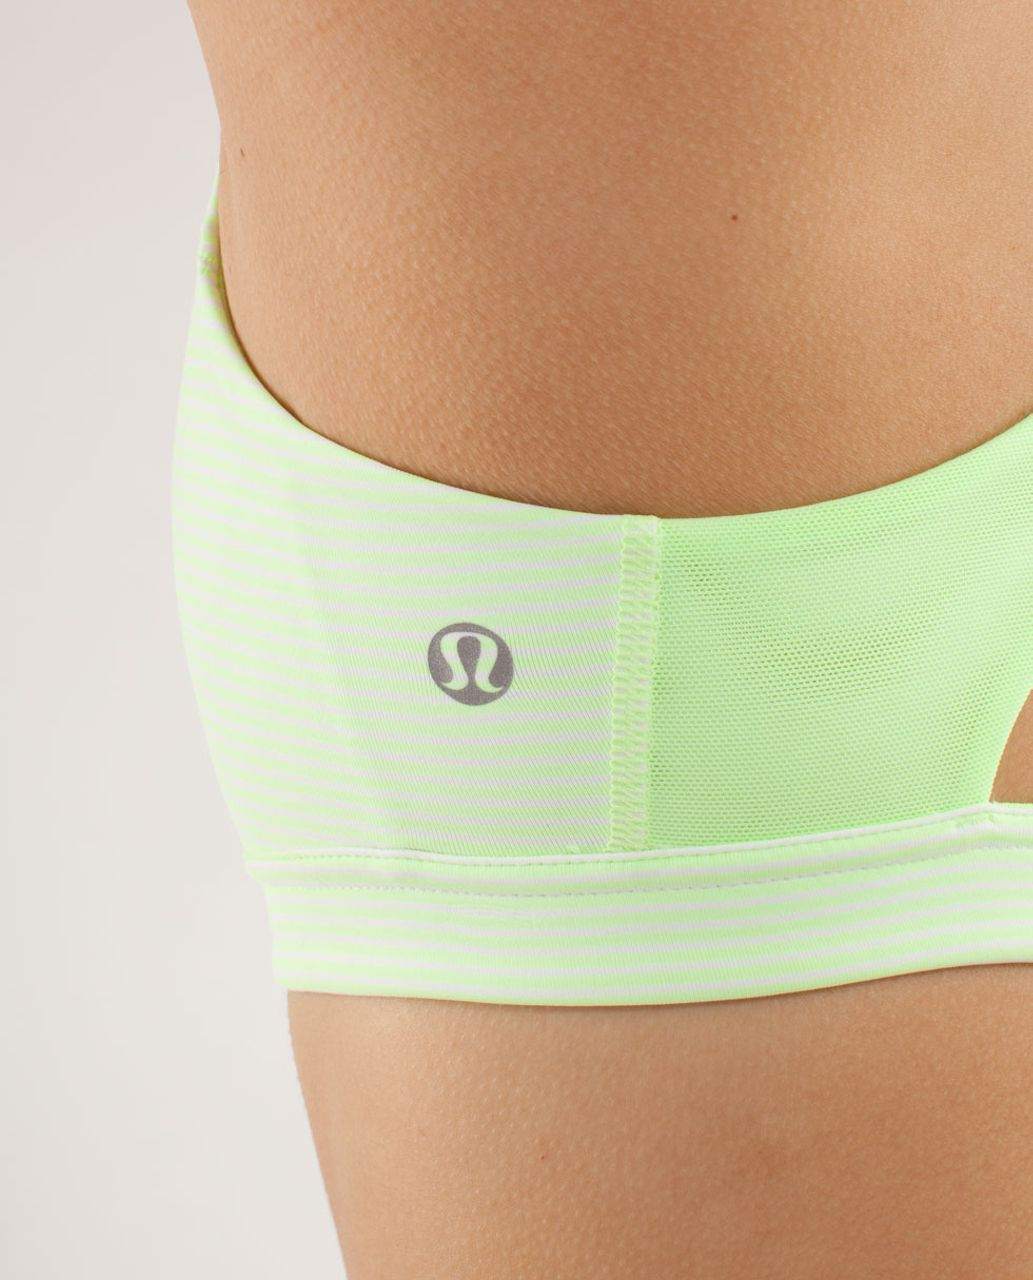 Lululemon Run:  Hook Me Up Bra - Wagon Stripe Faded Zap / Faded Zap